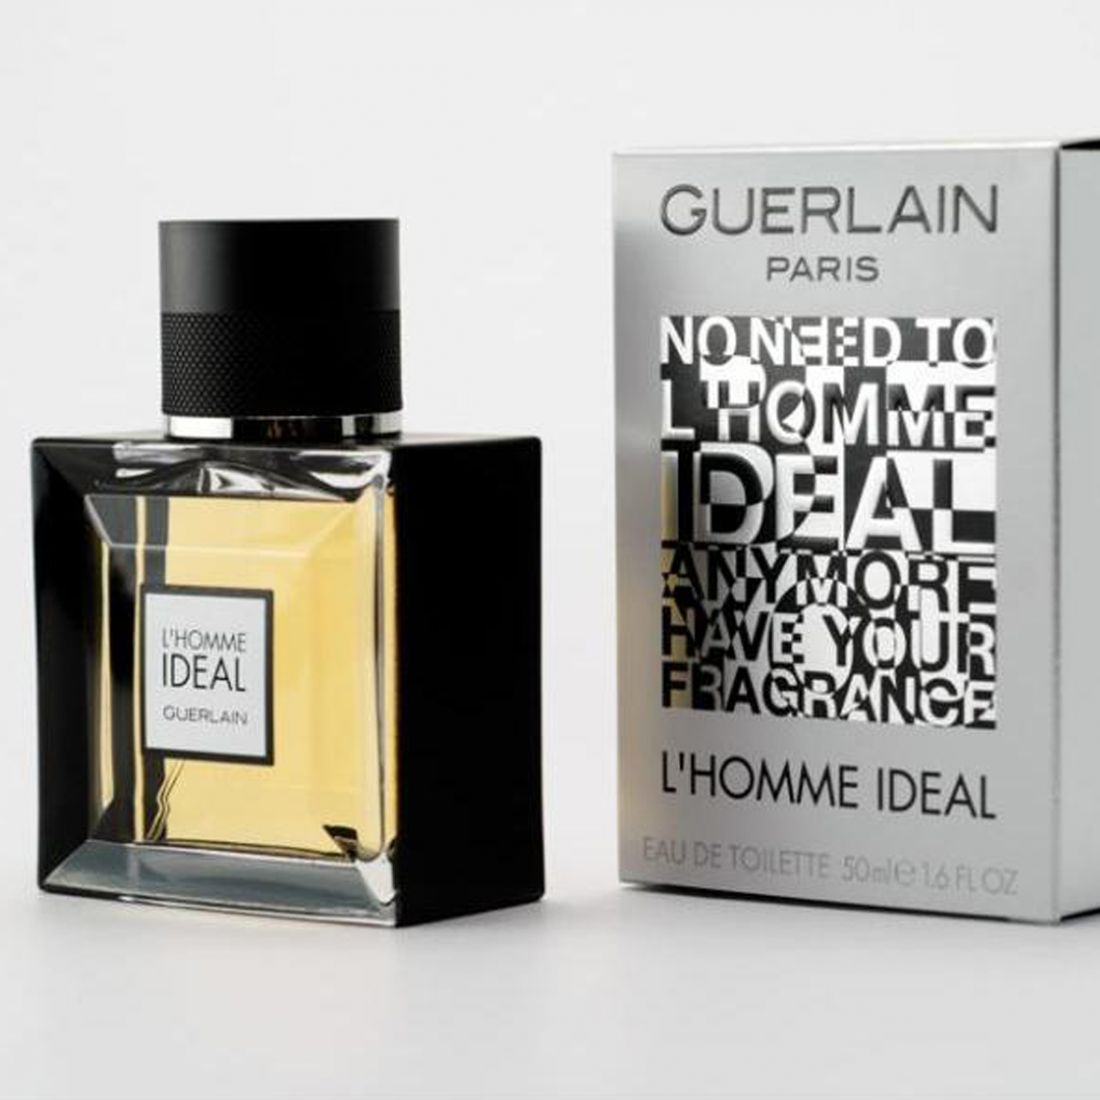 Guerlain - L'Homme Ideal, 50 ml